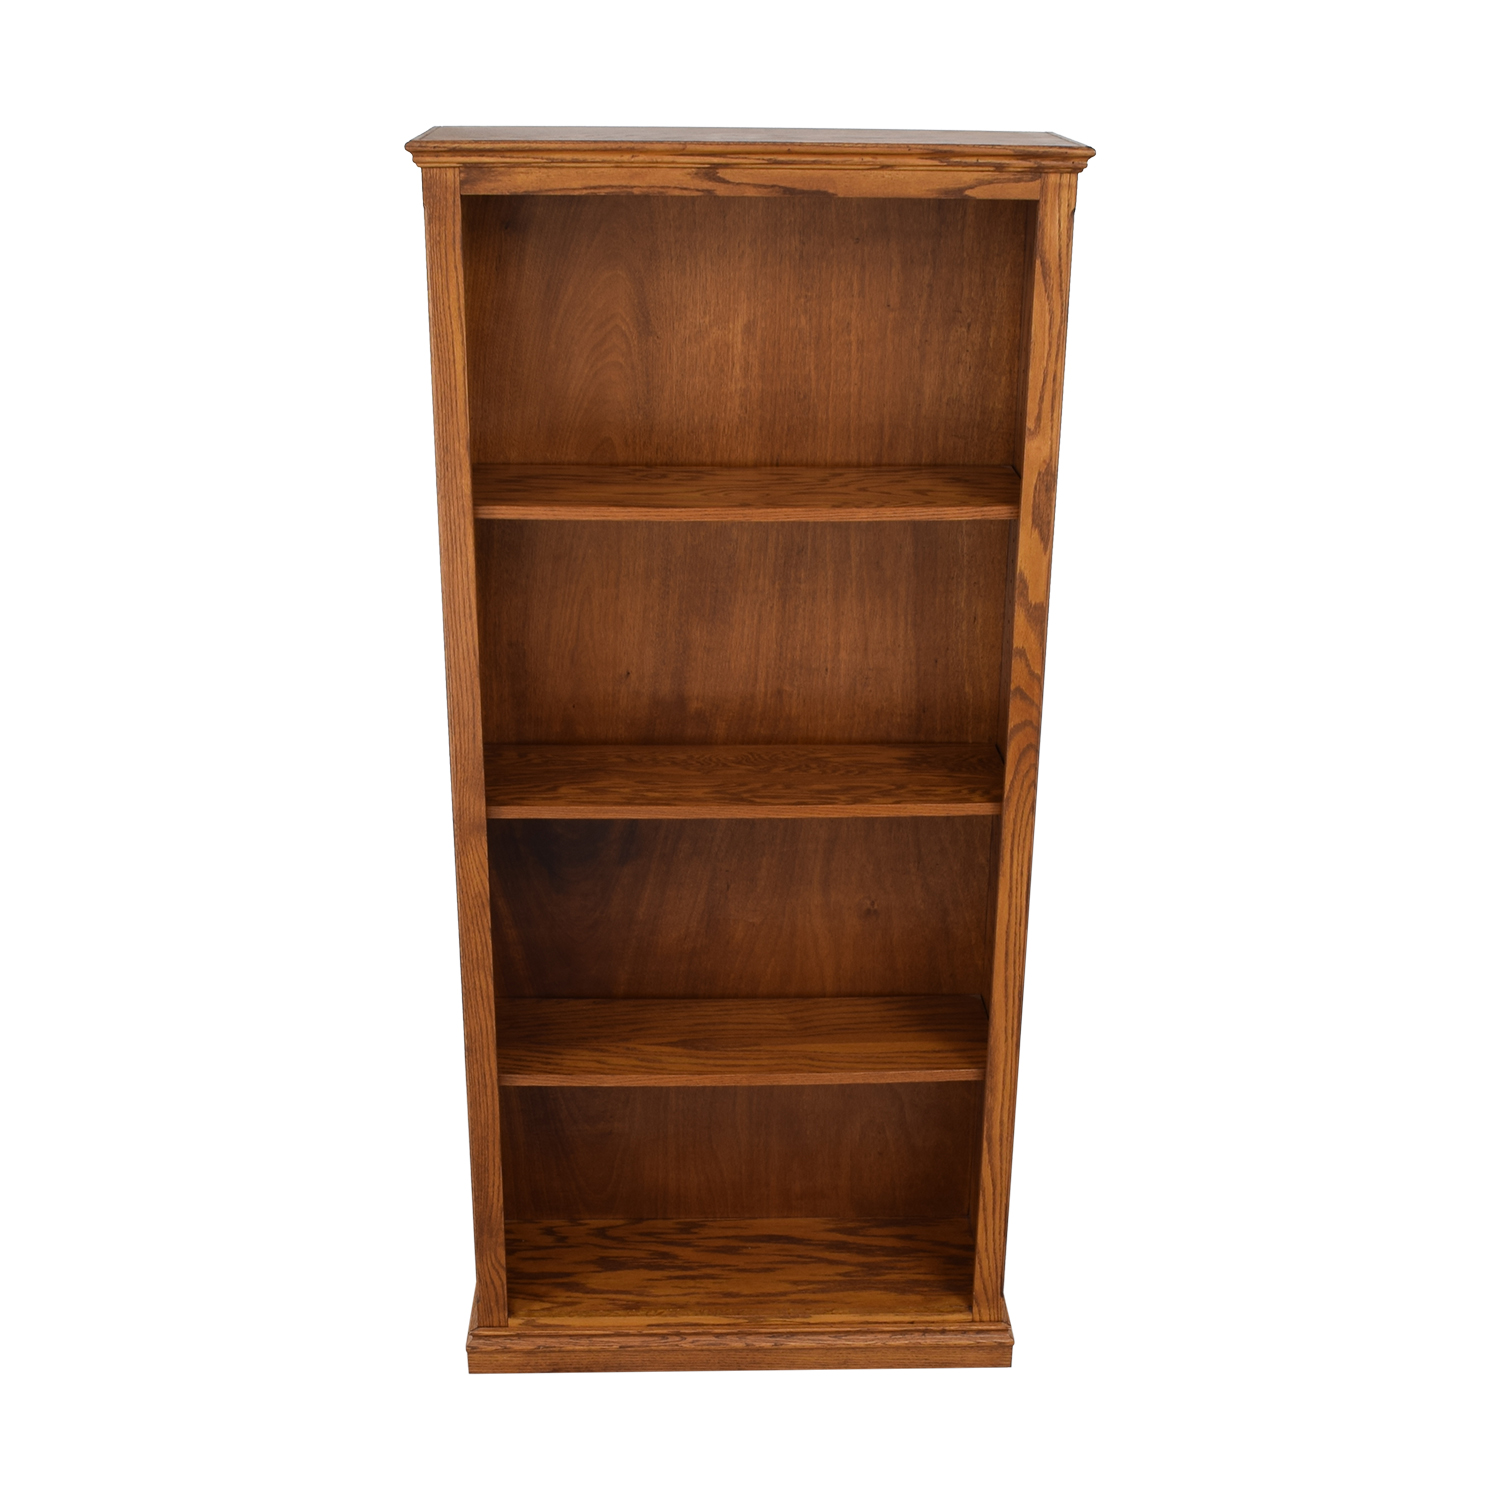 Wood Bookshelf / Bookcases & Shelving